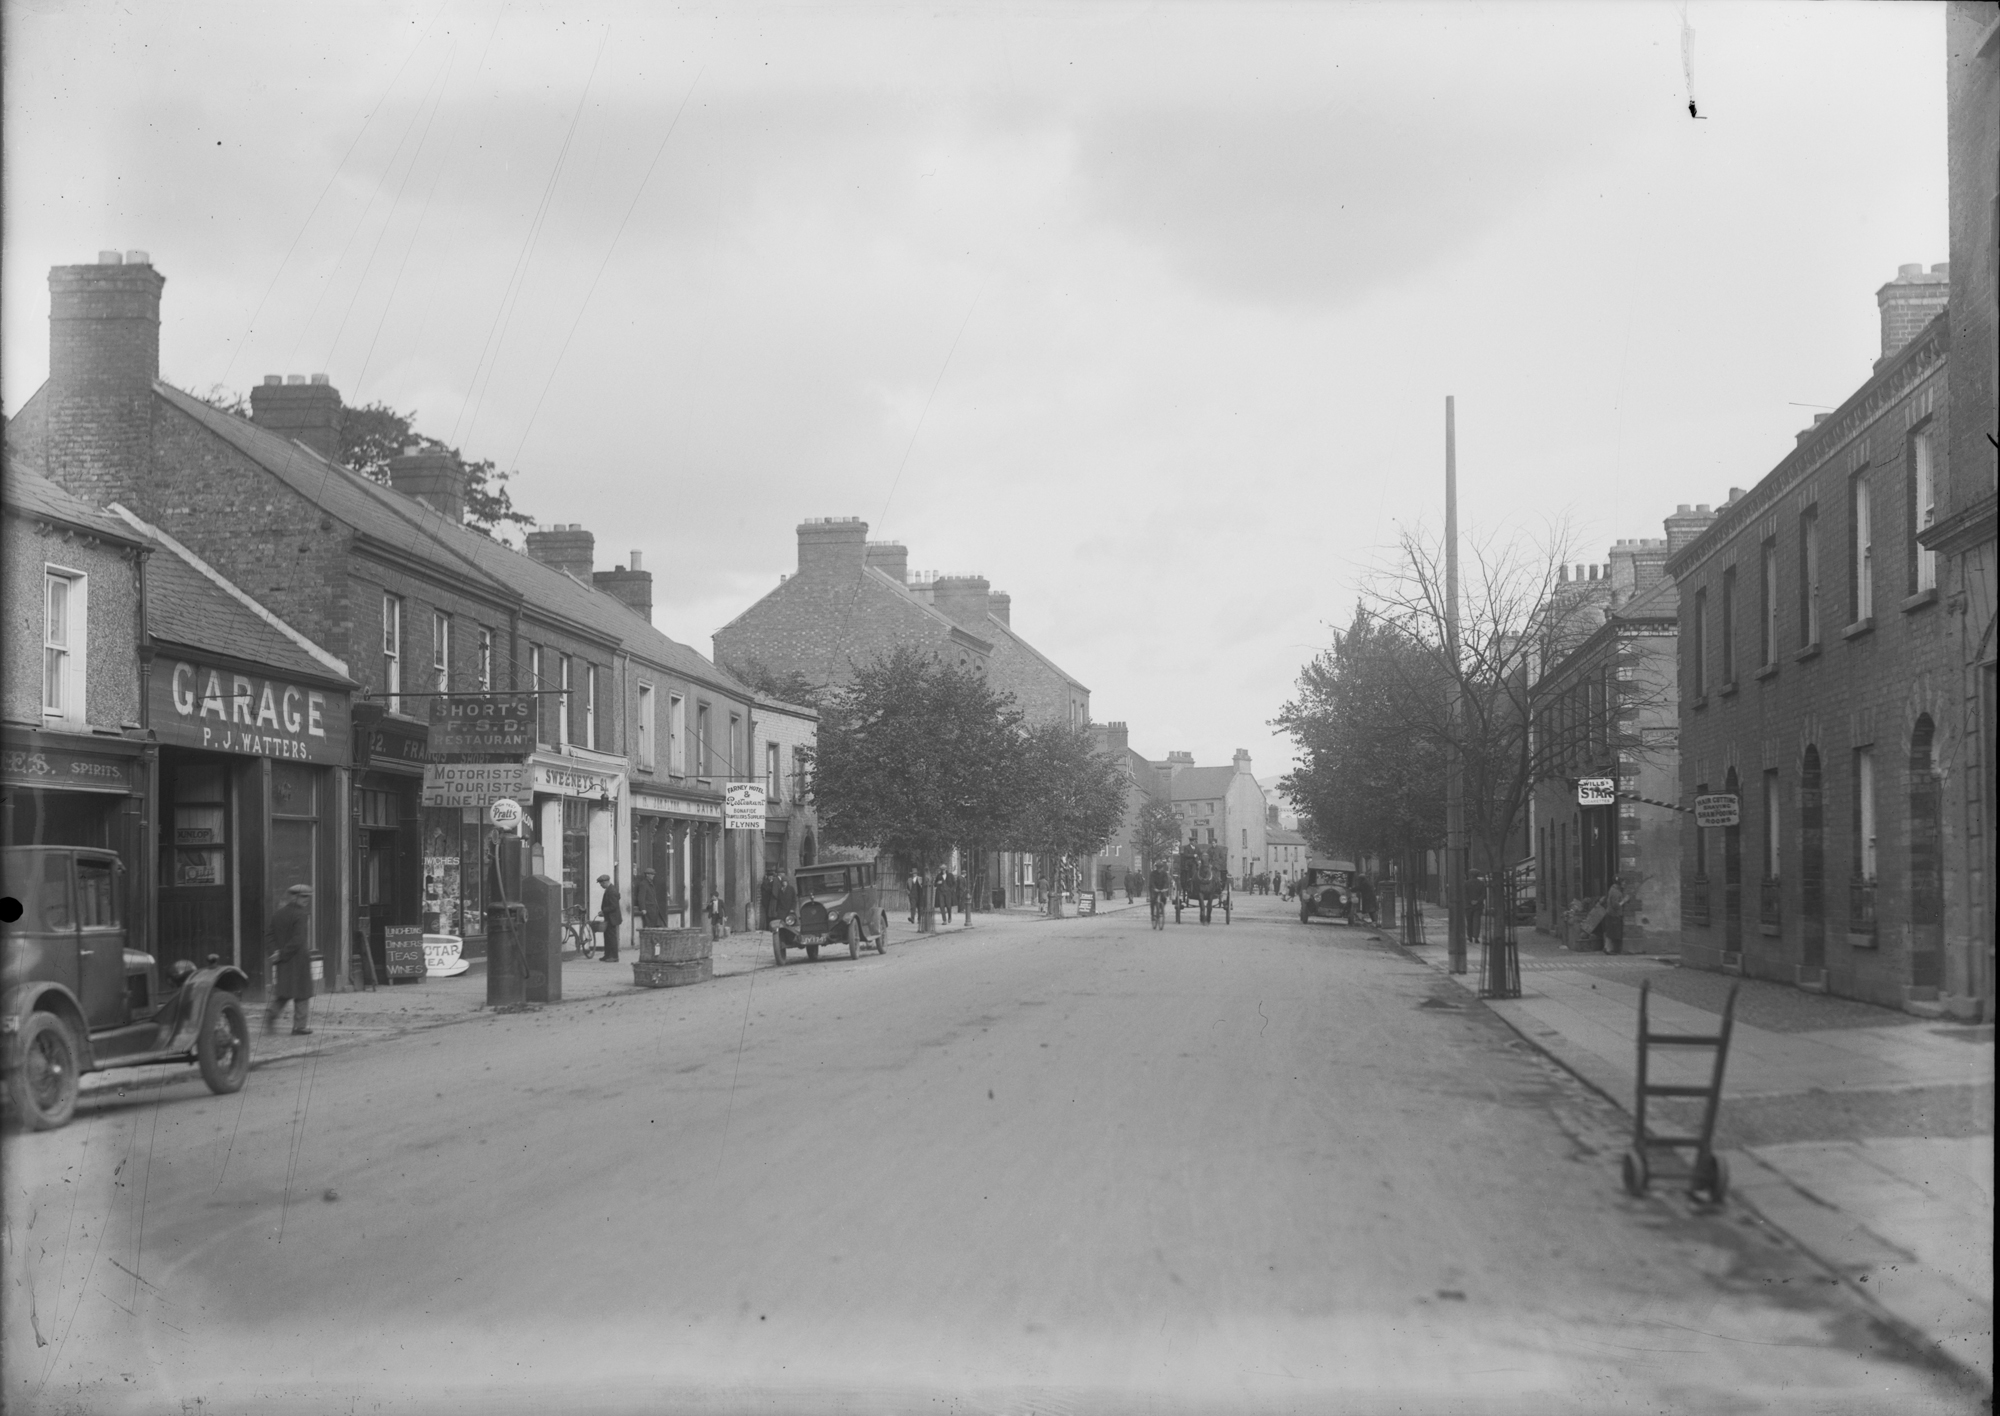 Park Street, Dundalk, Co. Louth